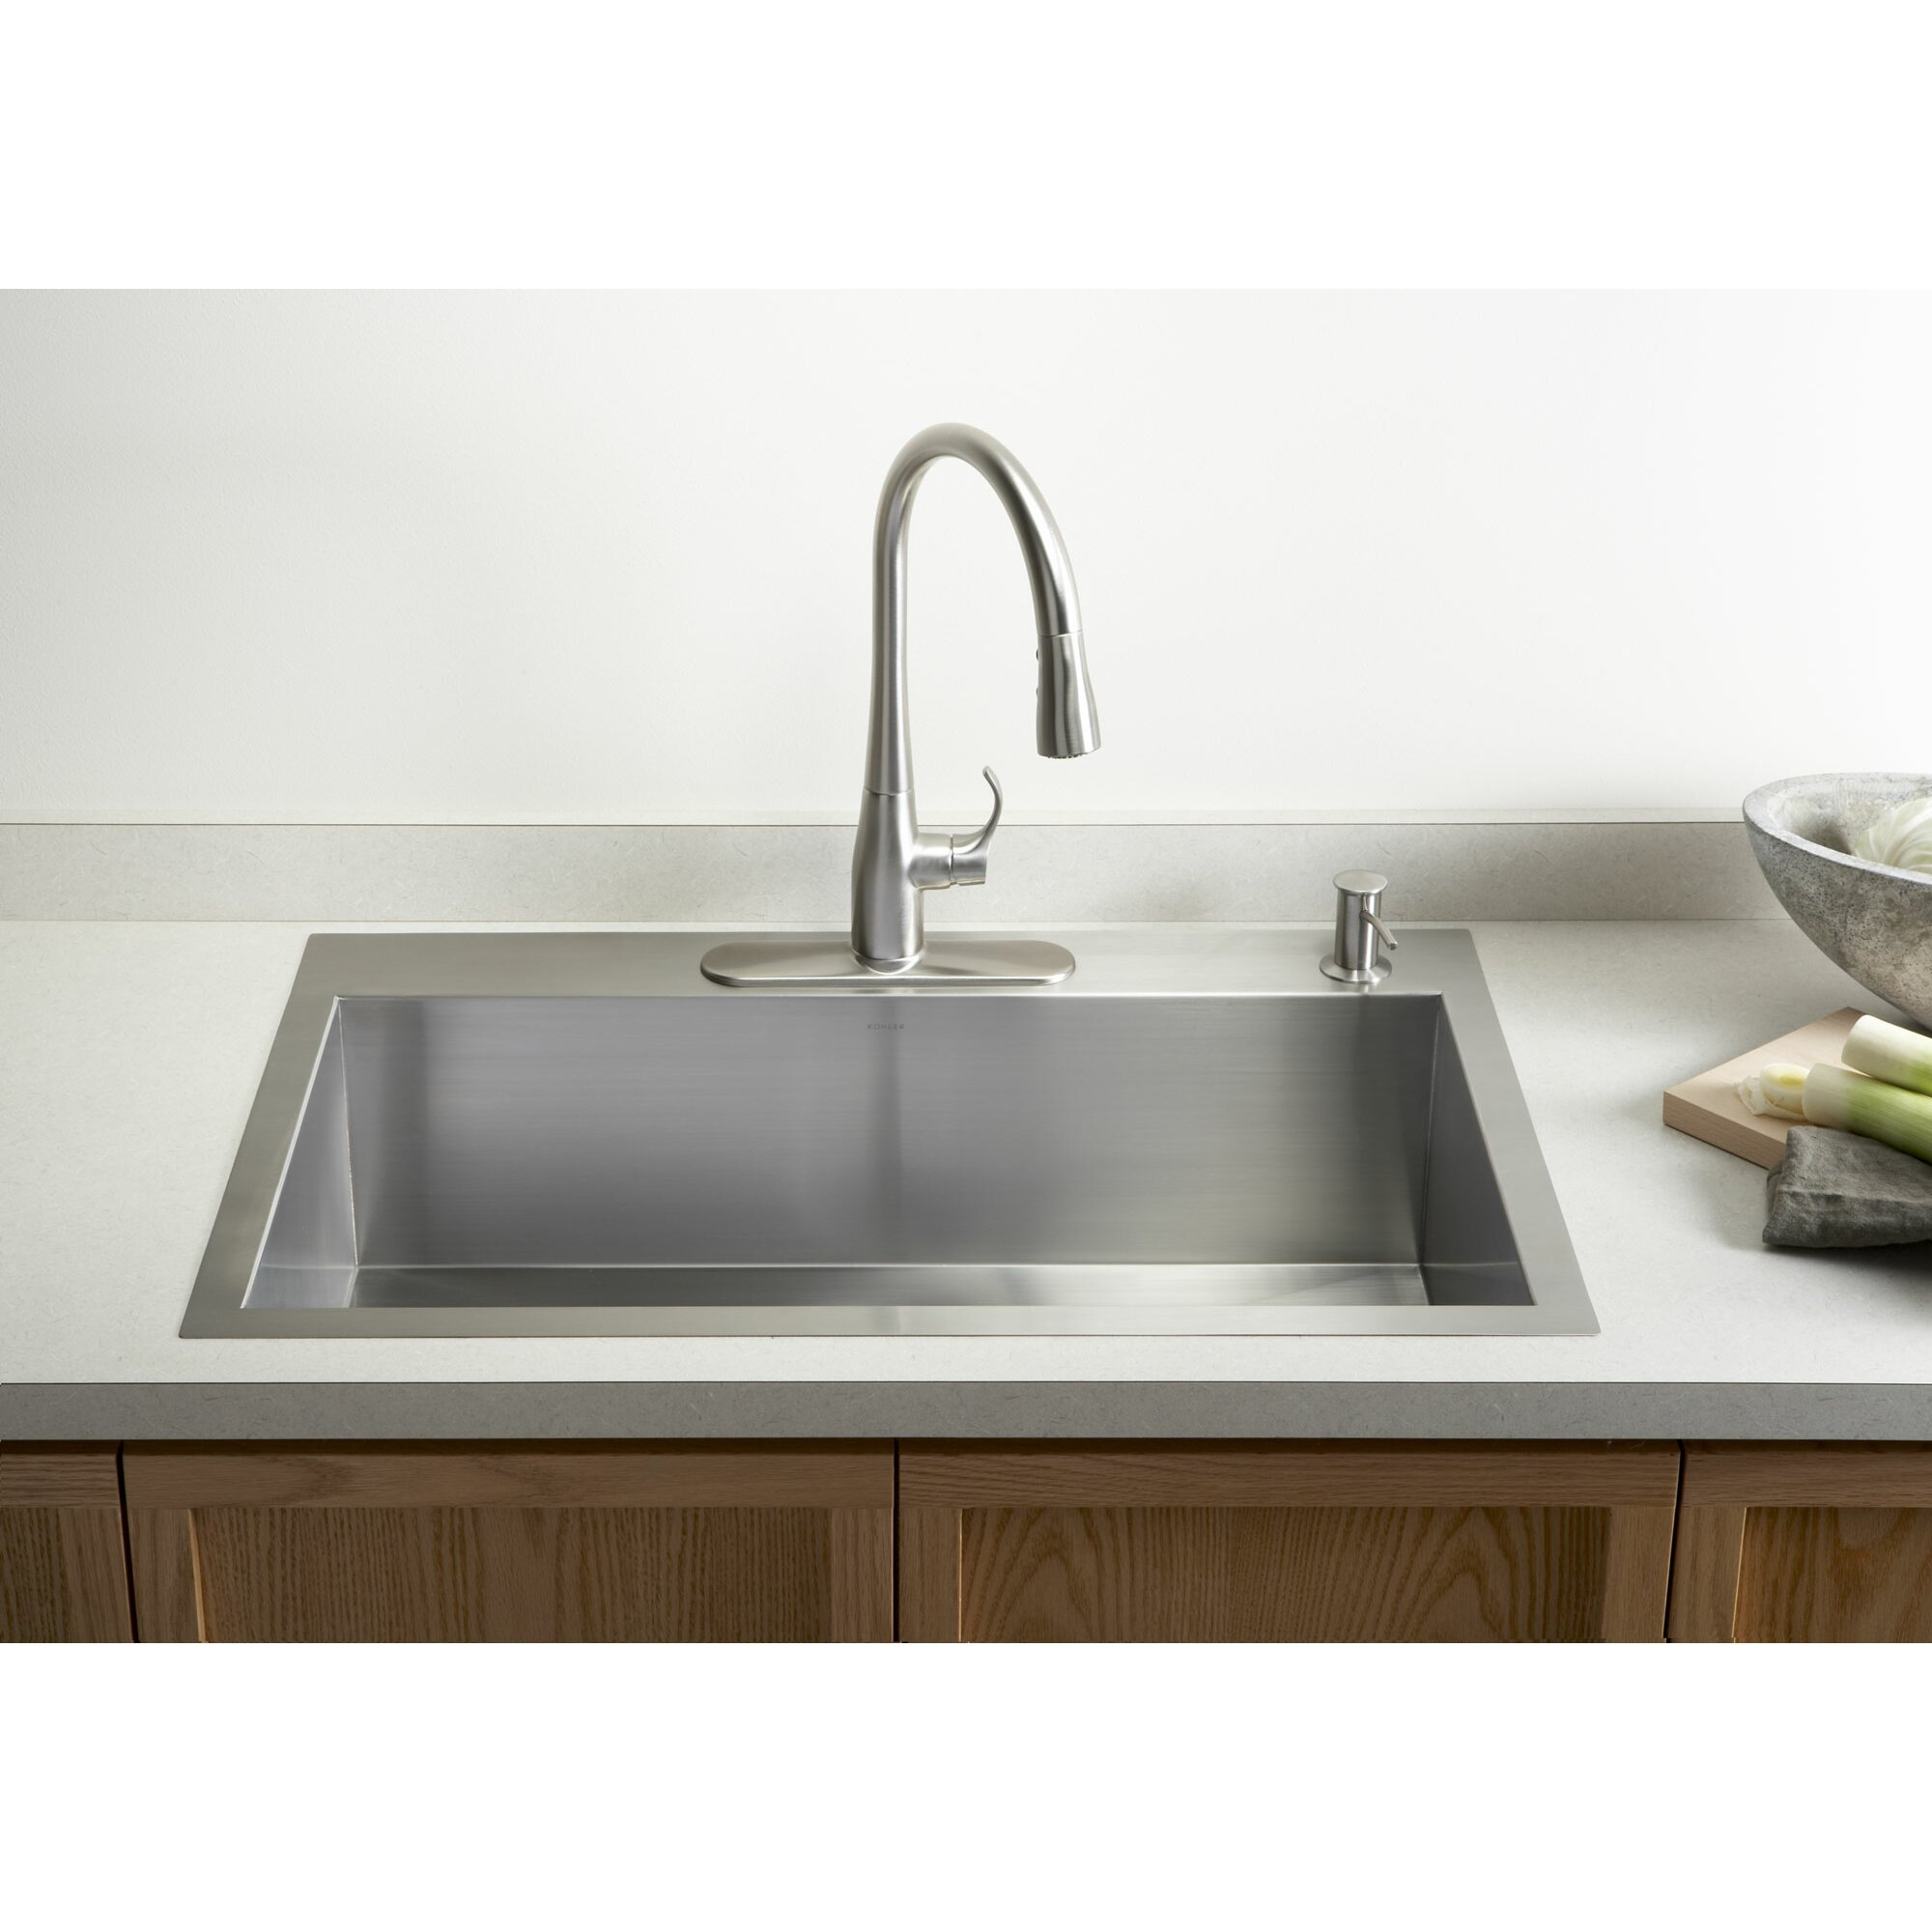 kohler vault 33 x 22 x 9 516 top mountunder mount large single bowl kitchen sink with single faucet hole reviews wayfair - Bowl Kitchen Sink